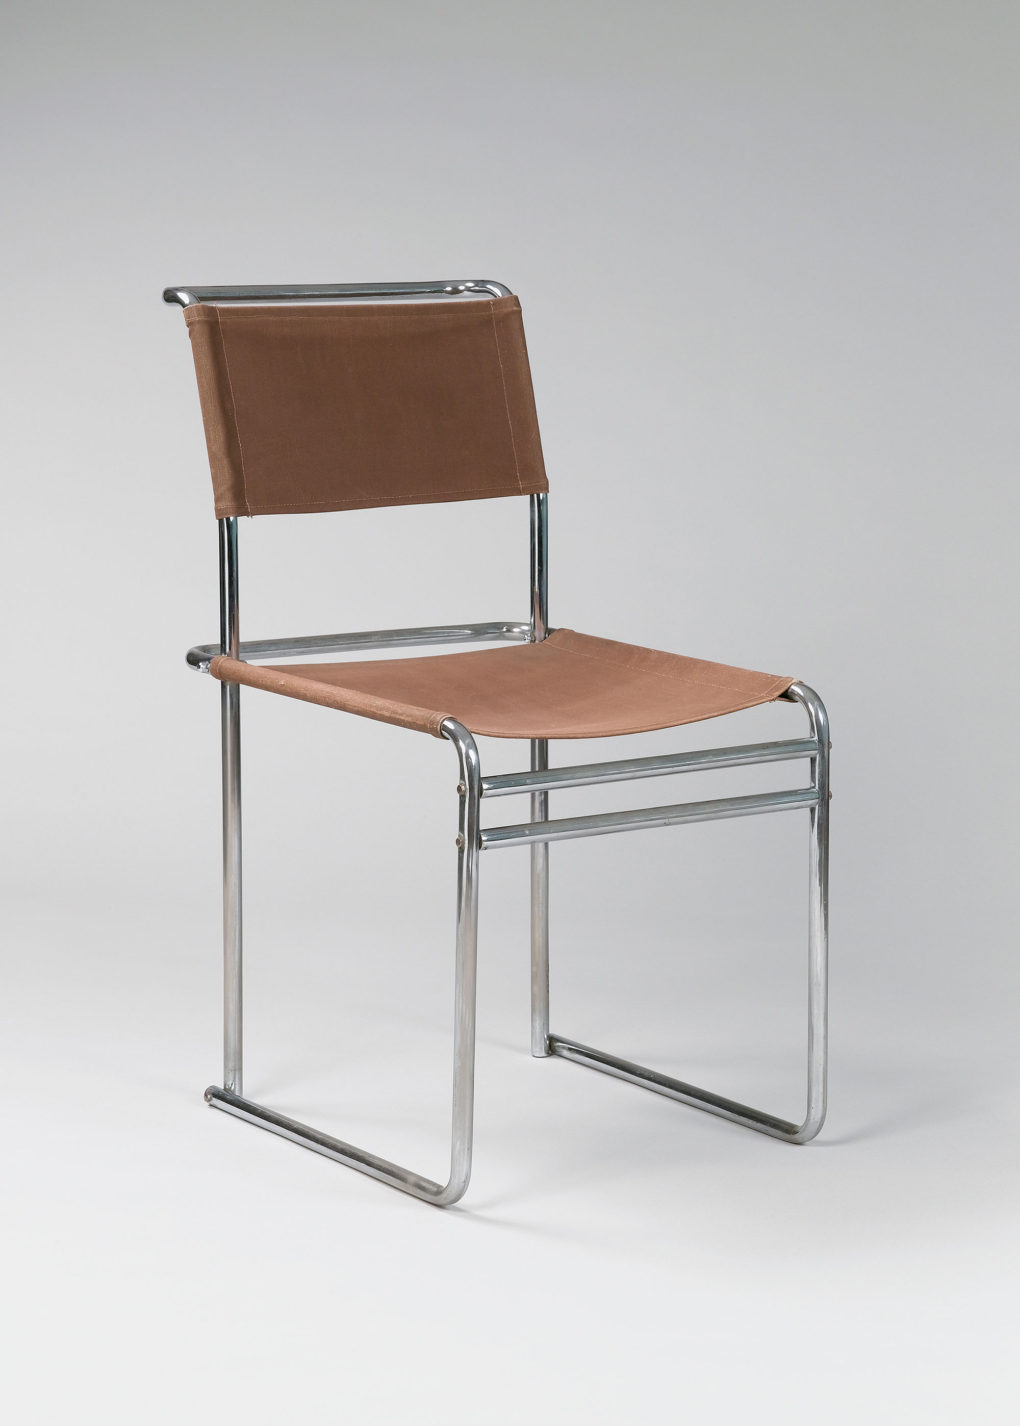 Cantilevered chair with tubular steel frame and a sheet of brown leather suspended between the bars for the seat and another for the back.